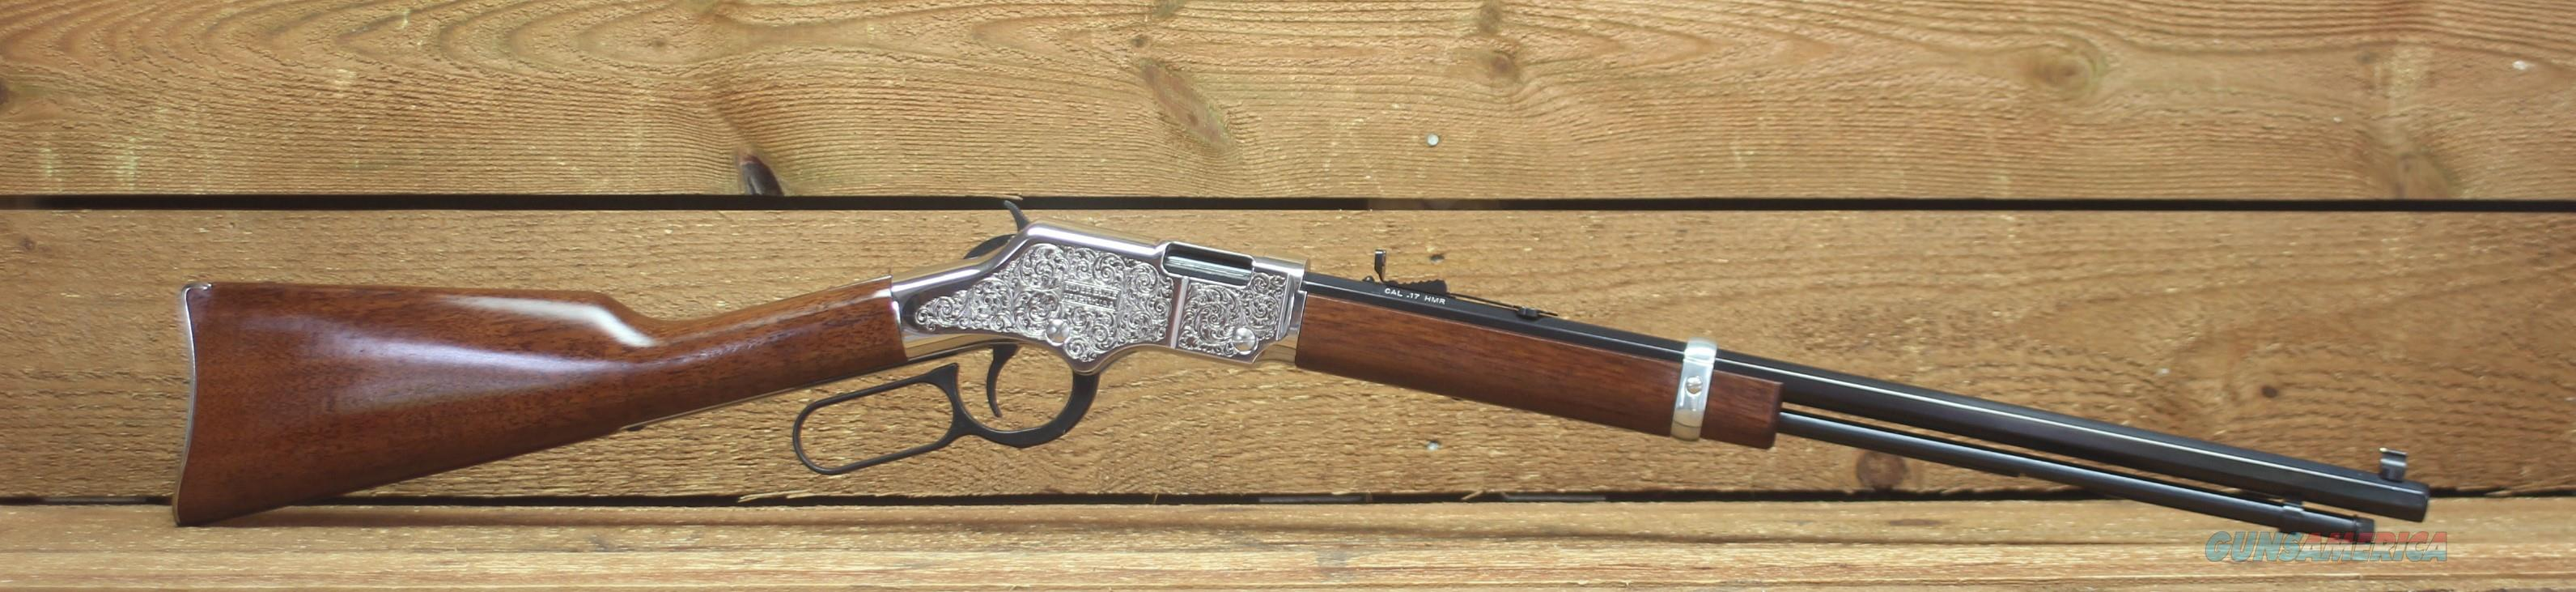 "Henry Silver Eagle Lever Action Rifle .17 HMR 20"" Octagonal Barrel 12 Rounds Nickel Engraved Receiver Walnut  H004SEV  EASY PAY  $67  Guns > Rifles > Henry Rifle Company"